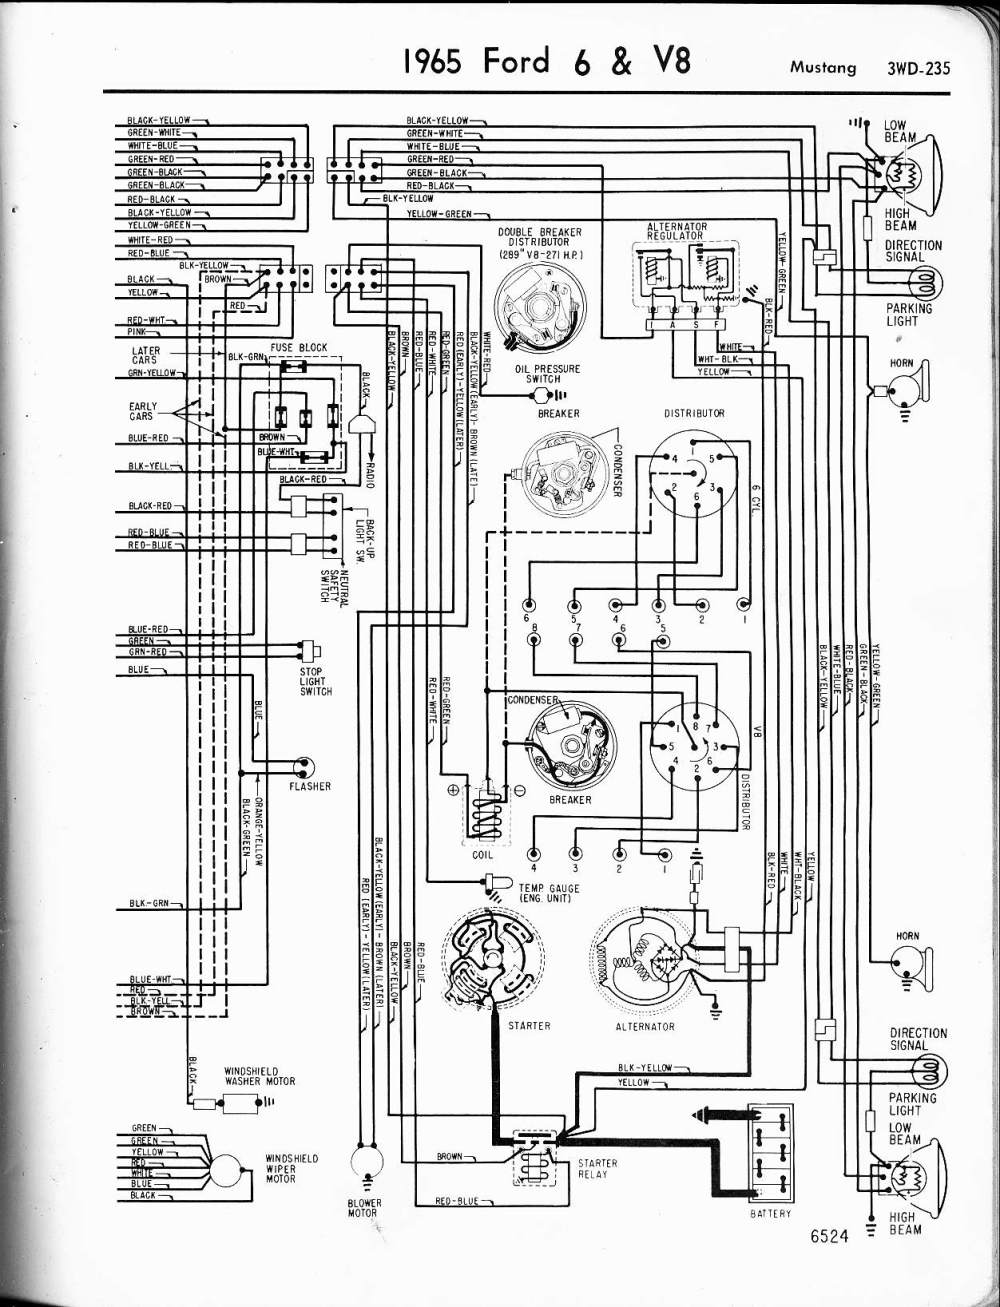 medium resolution of 57 65 ford wiring diagrams1965 6 u0026 v8 mustang right